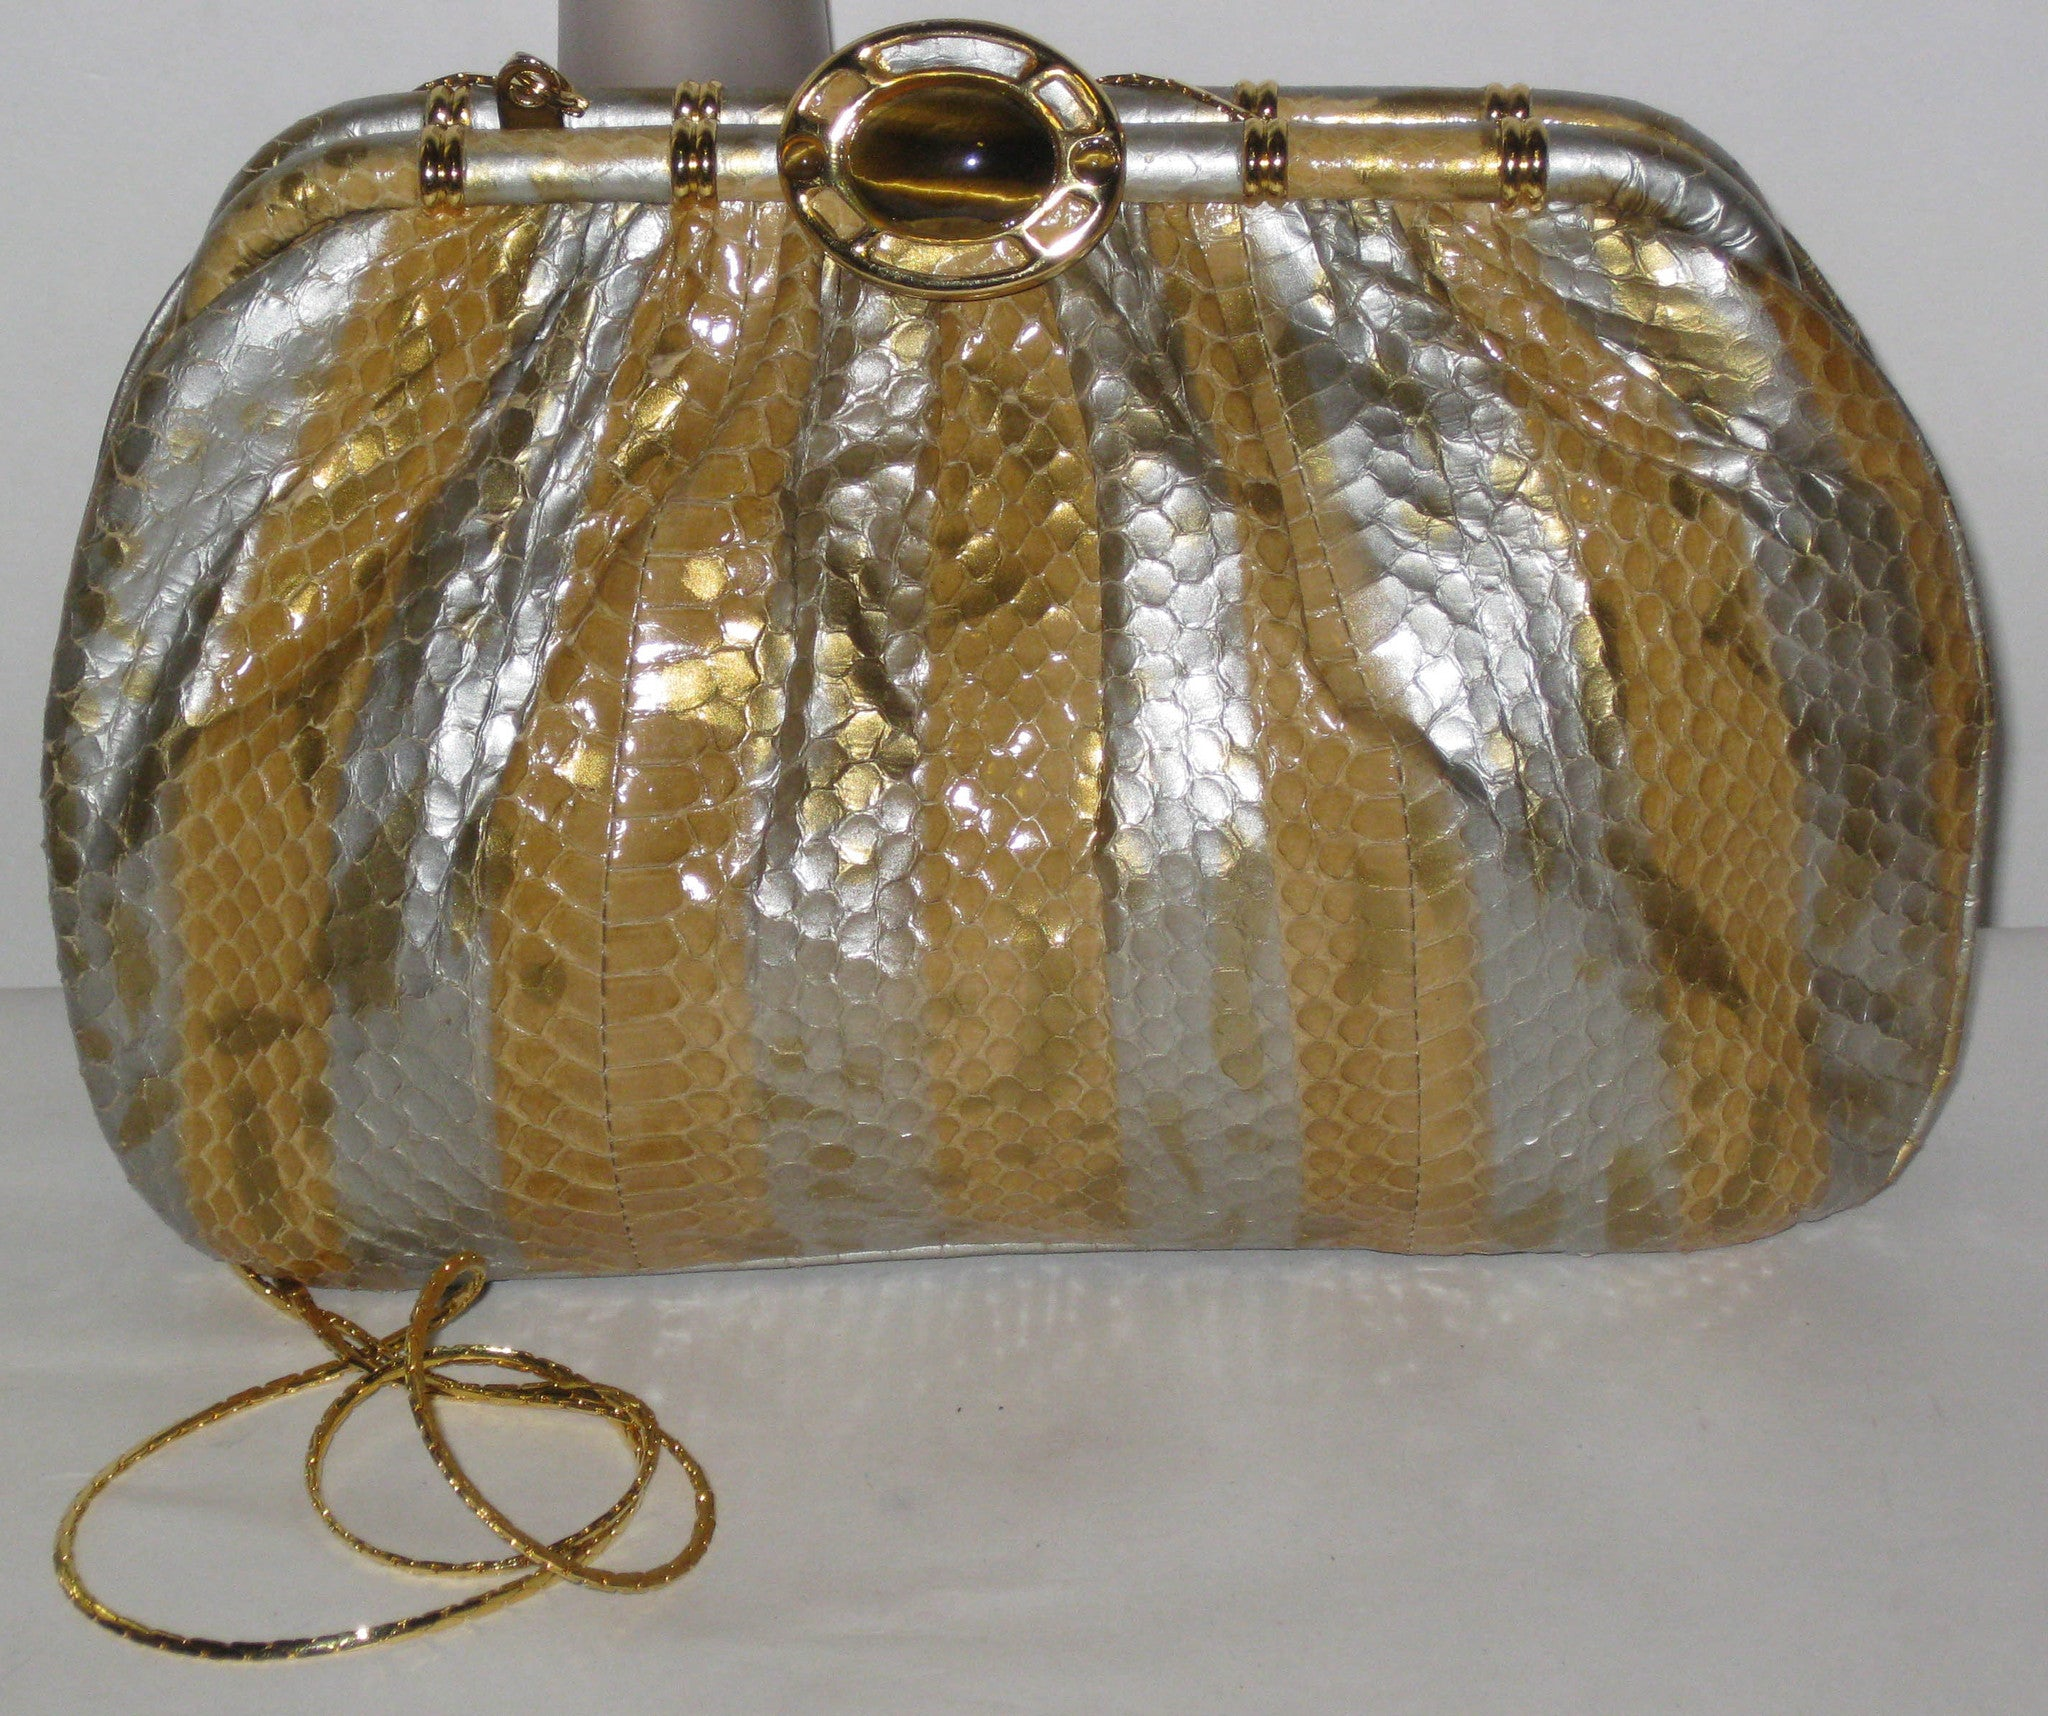 Vintage Ashneil Metallic Reptile Tigereye Clutch Purse